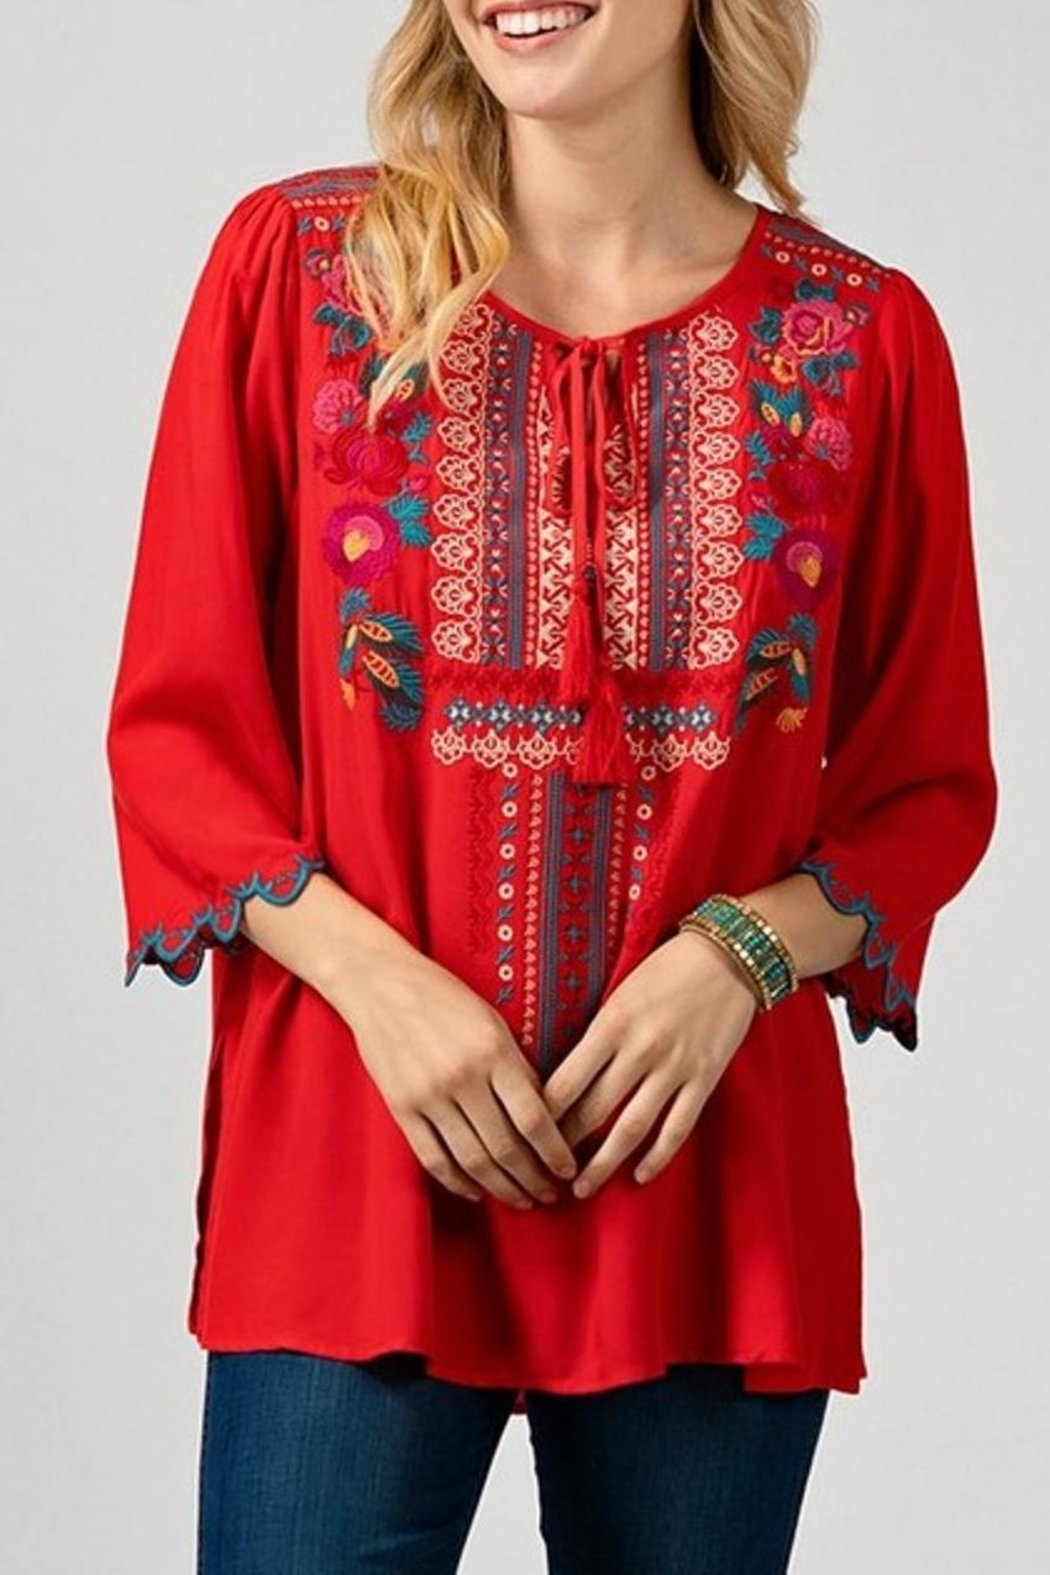 Andree by Unit Red Embroidered Top - Main Image